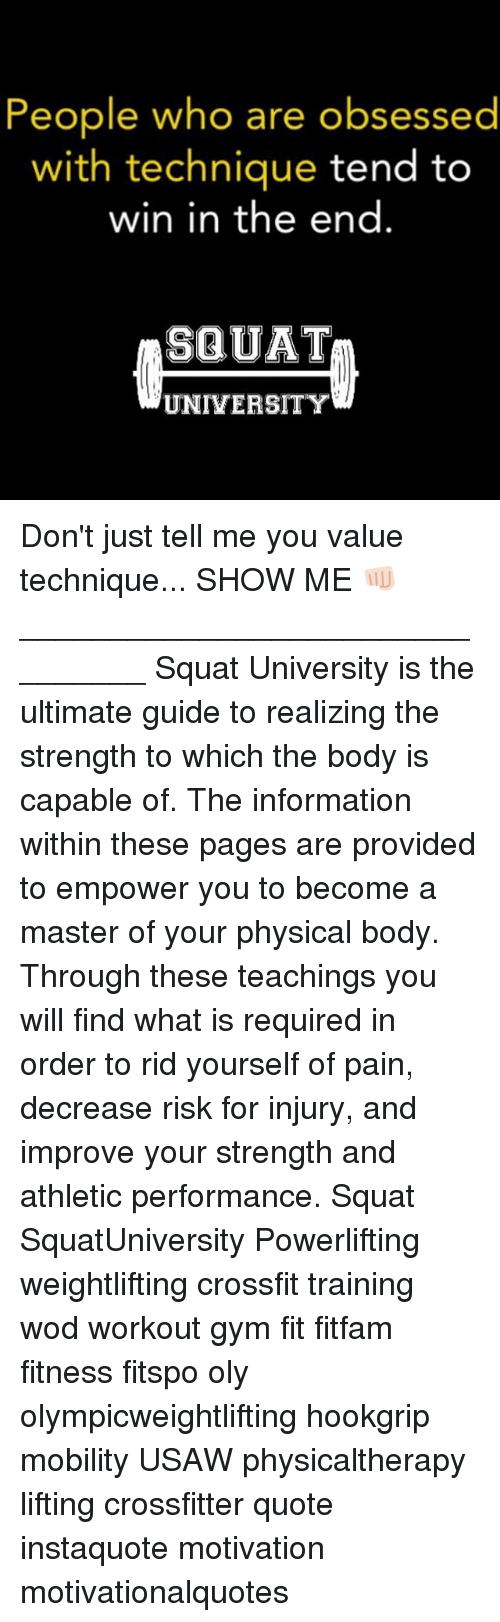 Gym, Memes, and Crossfit: People who are obsessed  with technique tend to  win in the end  SQUAT  UNIVERSITY Don't just tell me you value technique... SHOW ME 👊🏻 ________________________________ Squat University is the ultimate guide to realizing the strength to which the body is capable of. The information within these pages are provided to empower you to become a master of your physical body. Through these teachings you will find what is required in order to rid yourself of pain, decrease risk for injury, and improve your strength and athletic performance. Squat SquatUniversity Powerlifting weightlifting crossfit training wod workout gym fit fitfam fitness fitspo oly olympicweightlifting hookgrip mobility USAW physicaltherapy lifting crossfitter quote instaquote motivation motivationalquotes